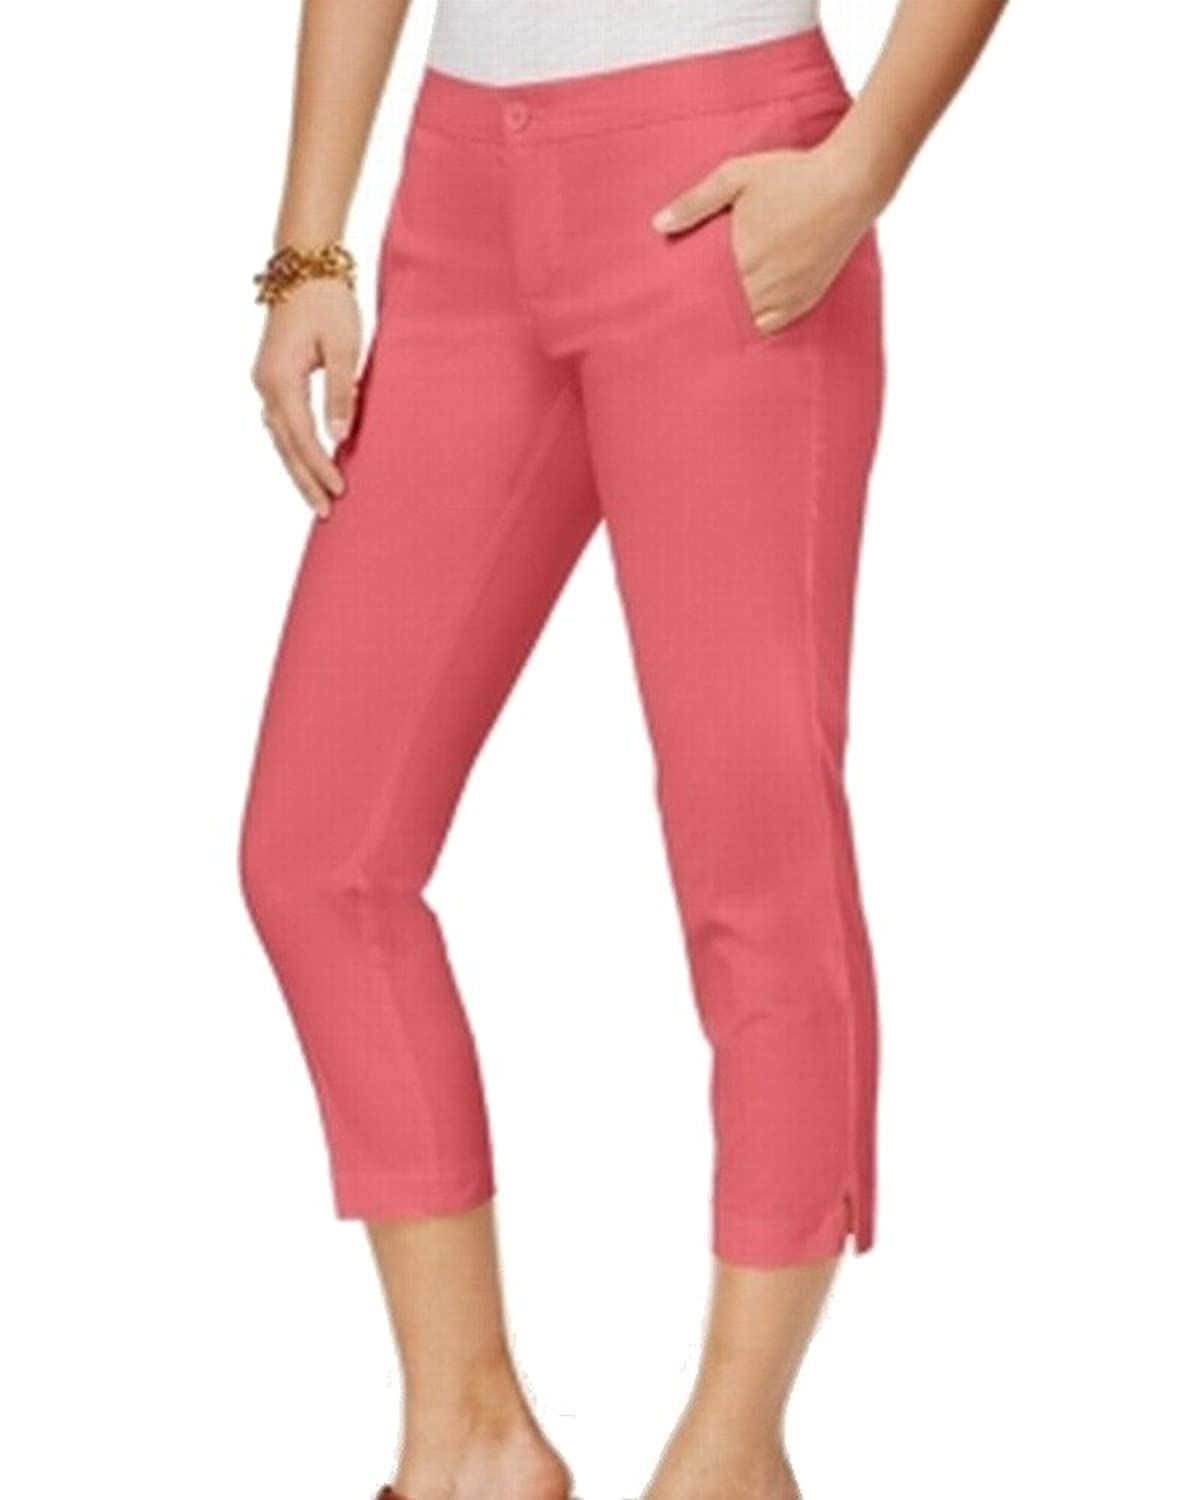 Tommy Hilfiger Women's 10X25 Capris Cropped Pants Pink 10